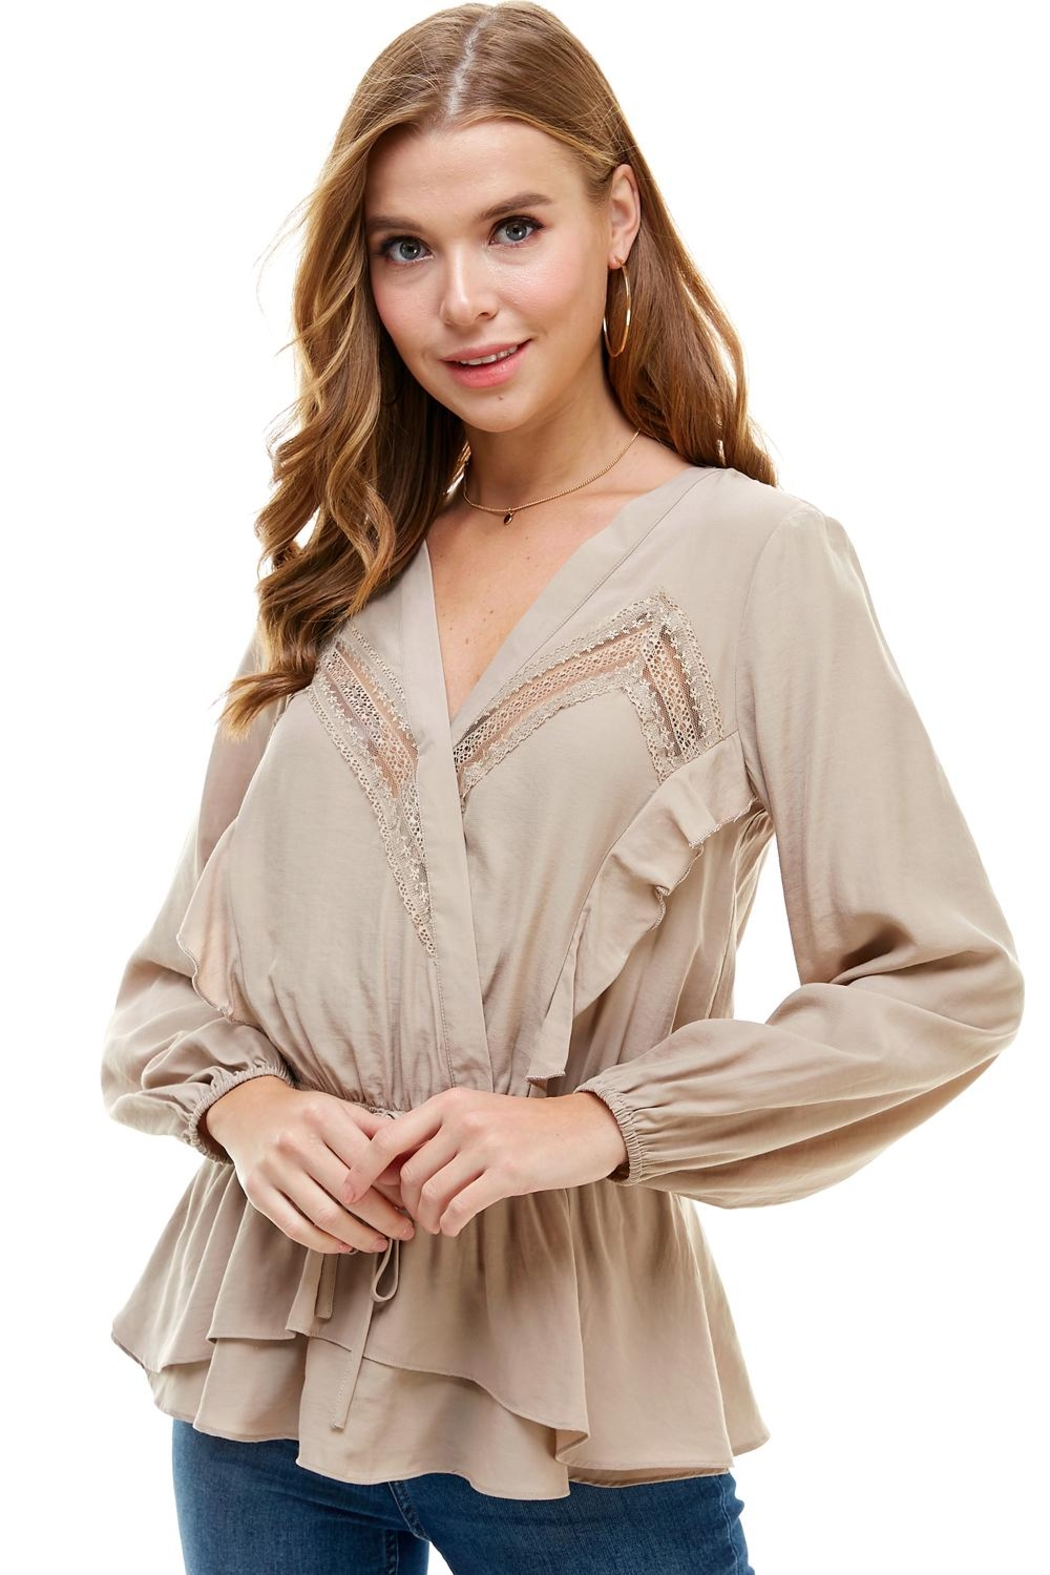 Miley and Molly Surplice Lace Trim Inset Cinched Waist Long Sleeve Blouse - Main Image